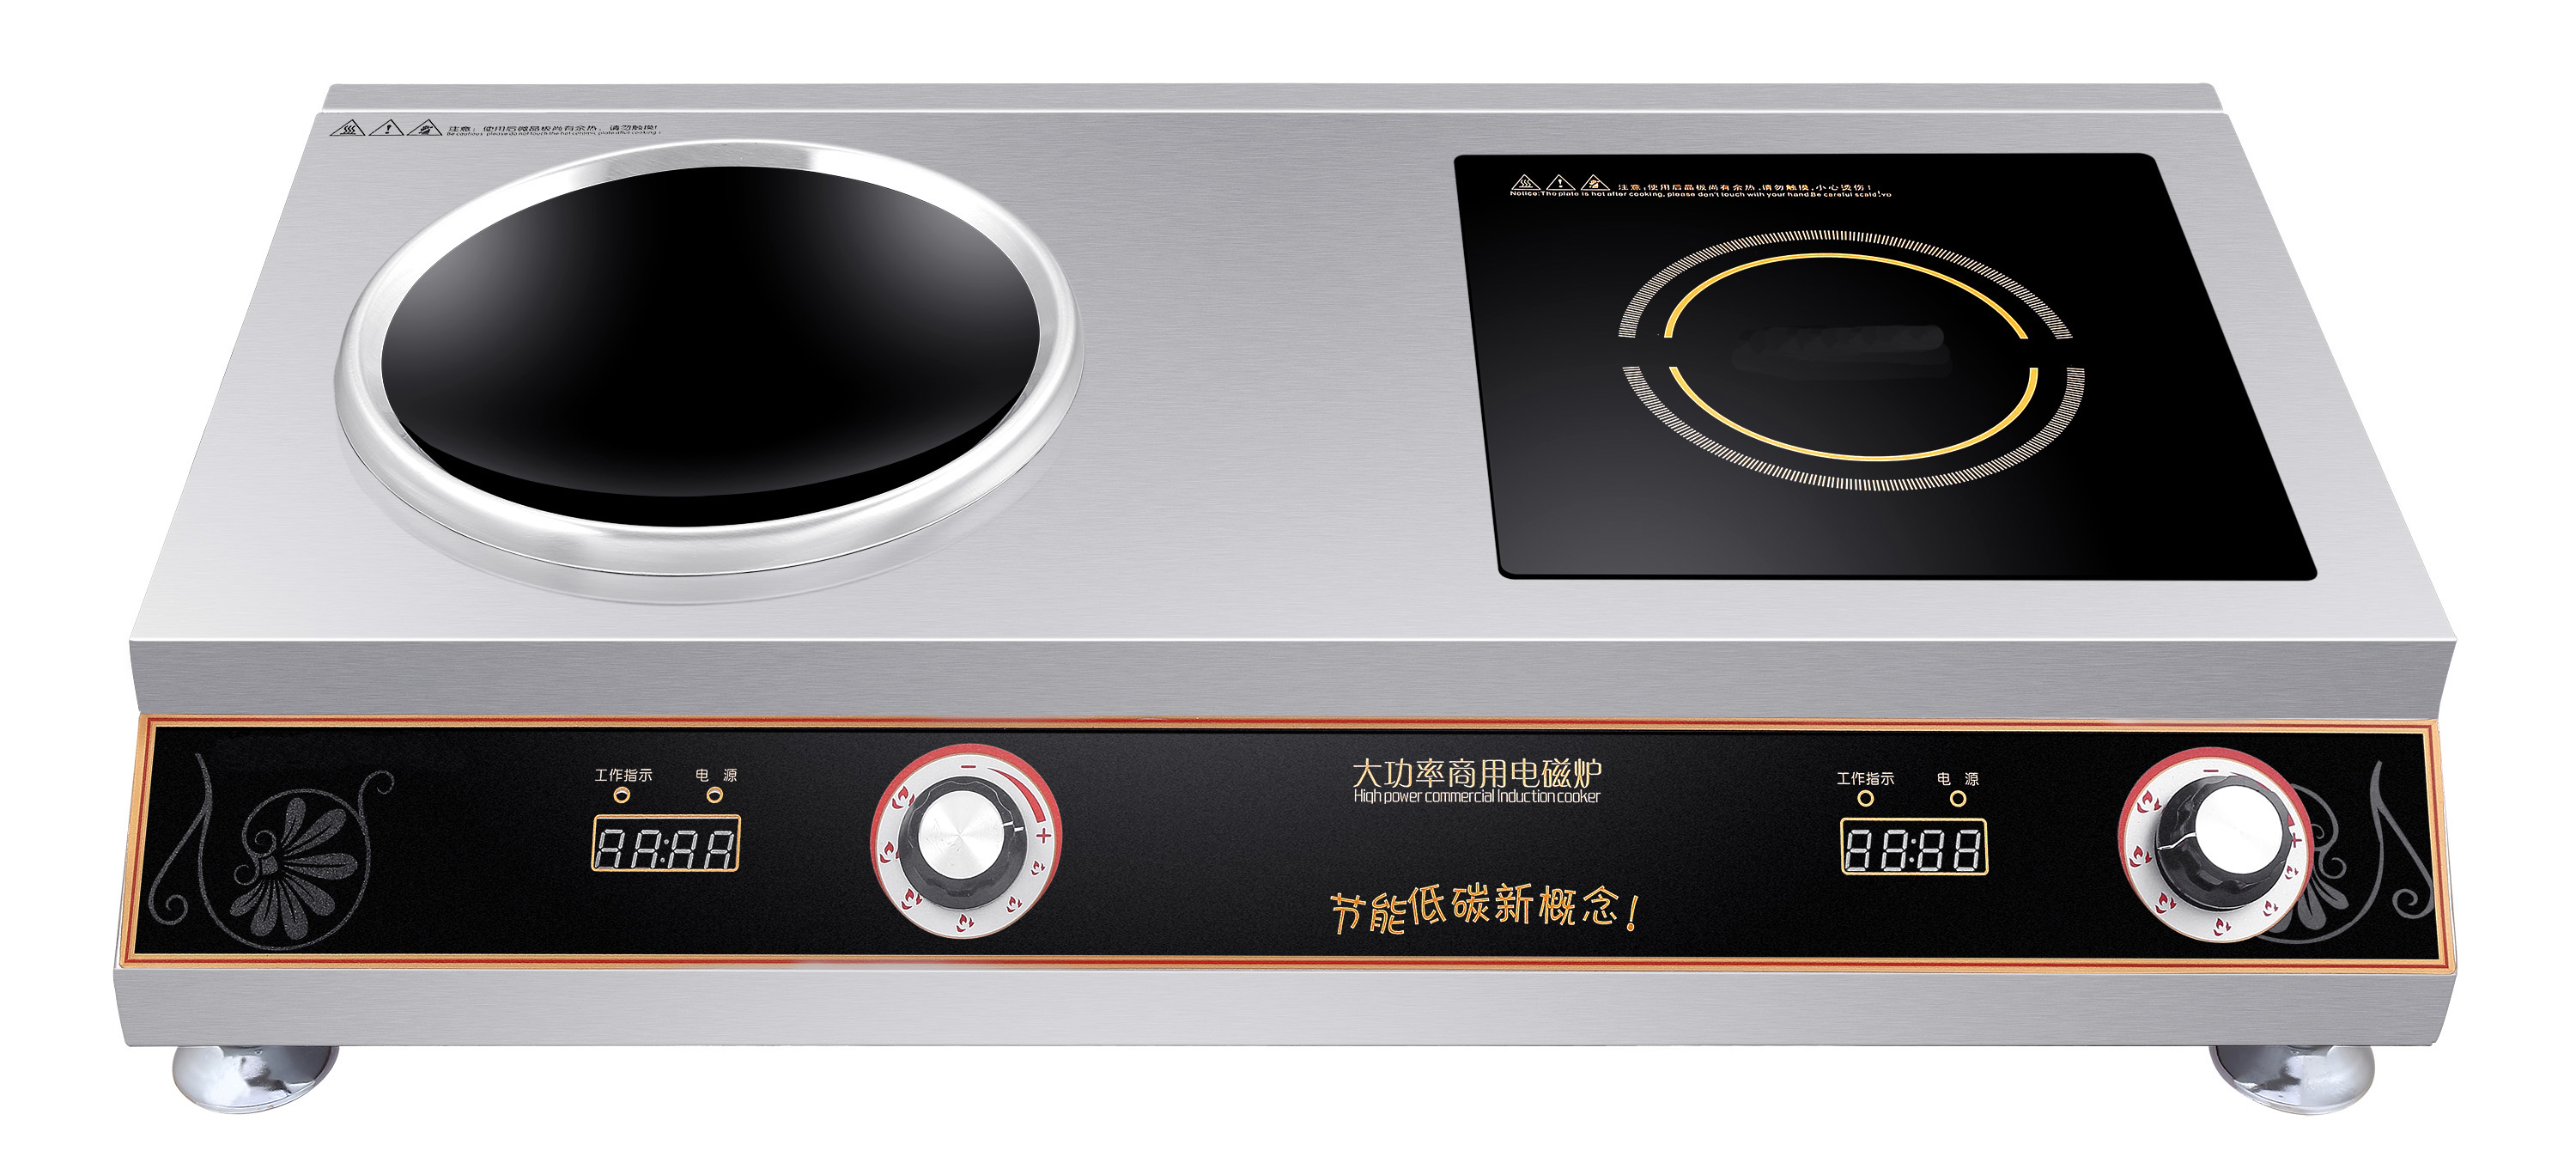 7000W Stainless steel commercial induction cooker